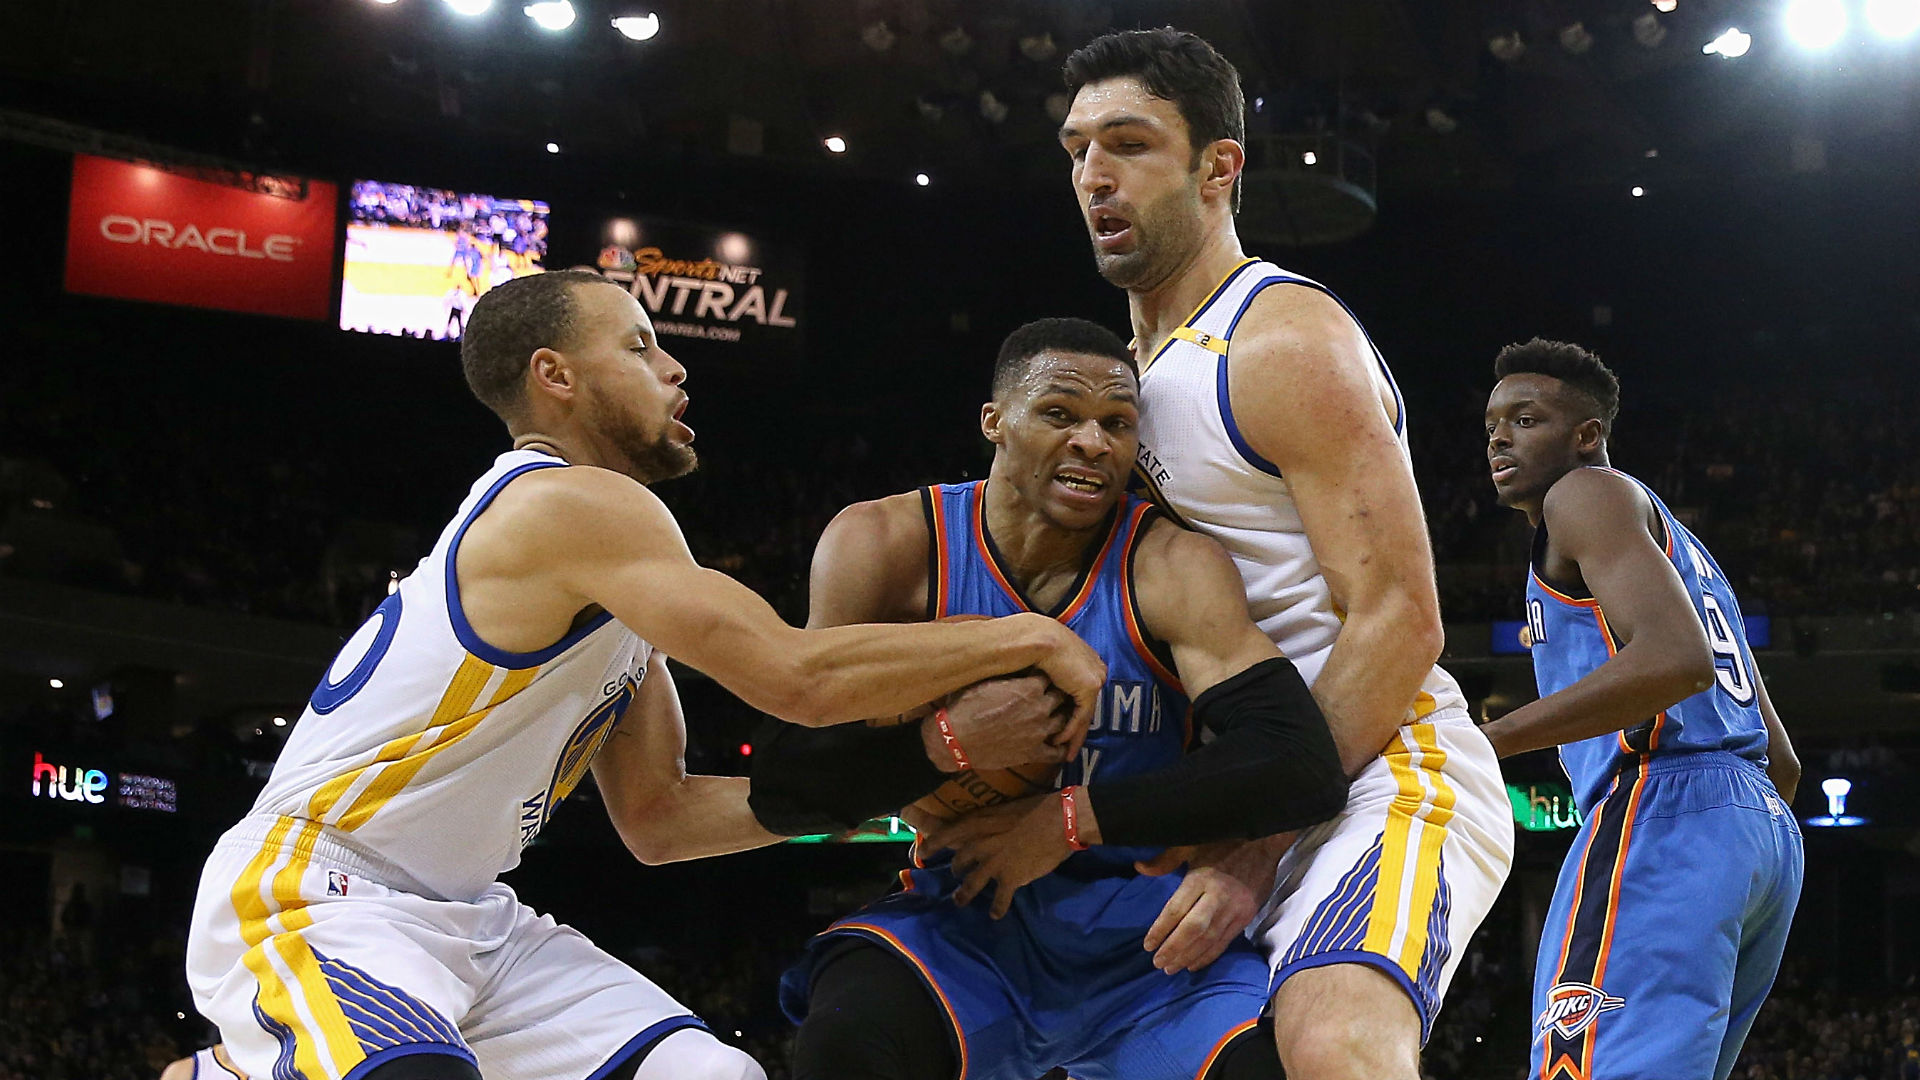 Pachulia will not be punished for controversial fall on Westbrook